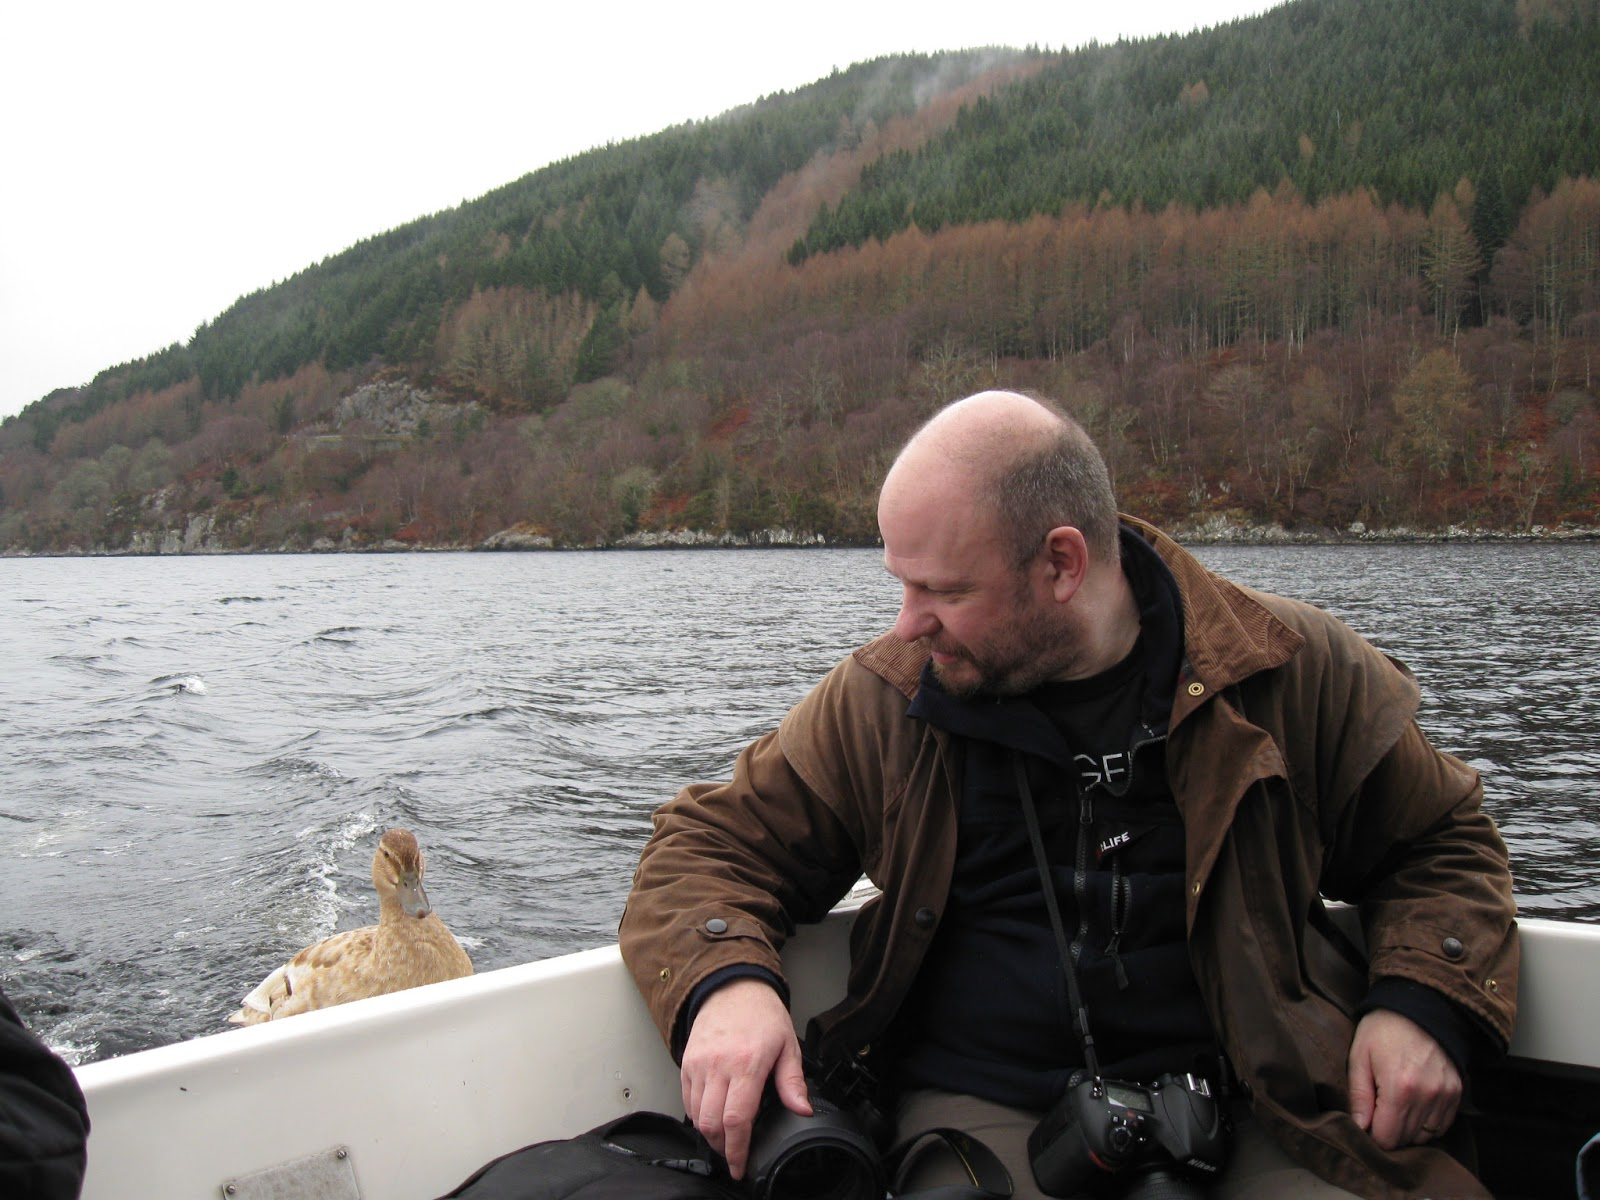 Loch Ness Monster Sightings 2014 So the cake was eaten,